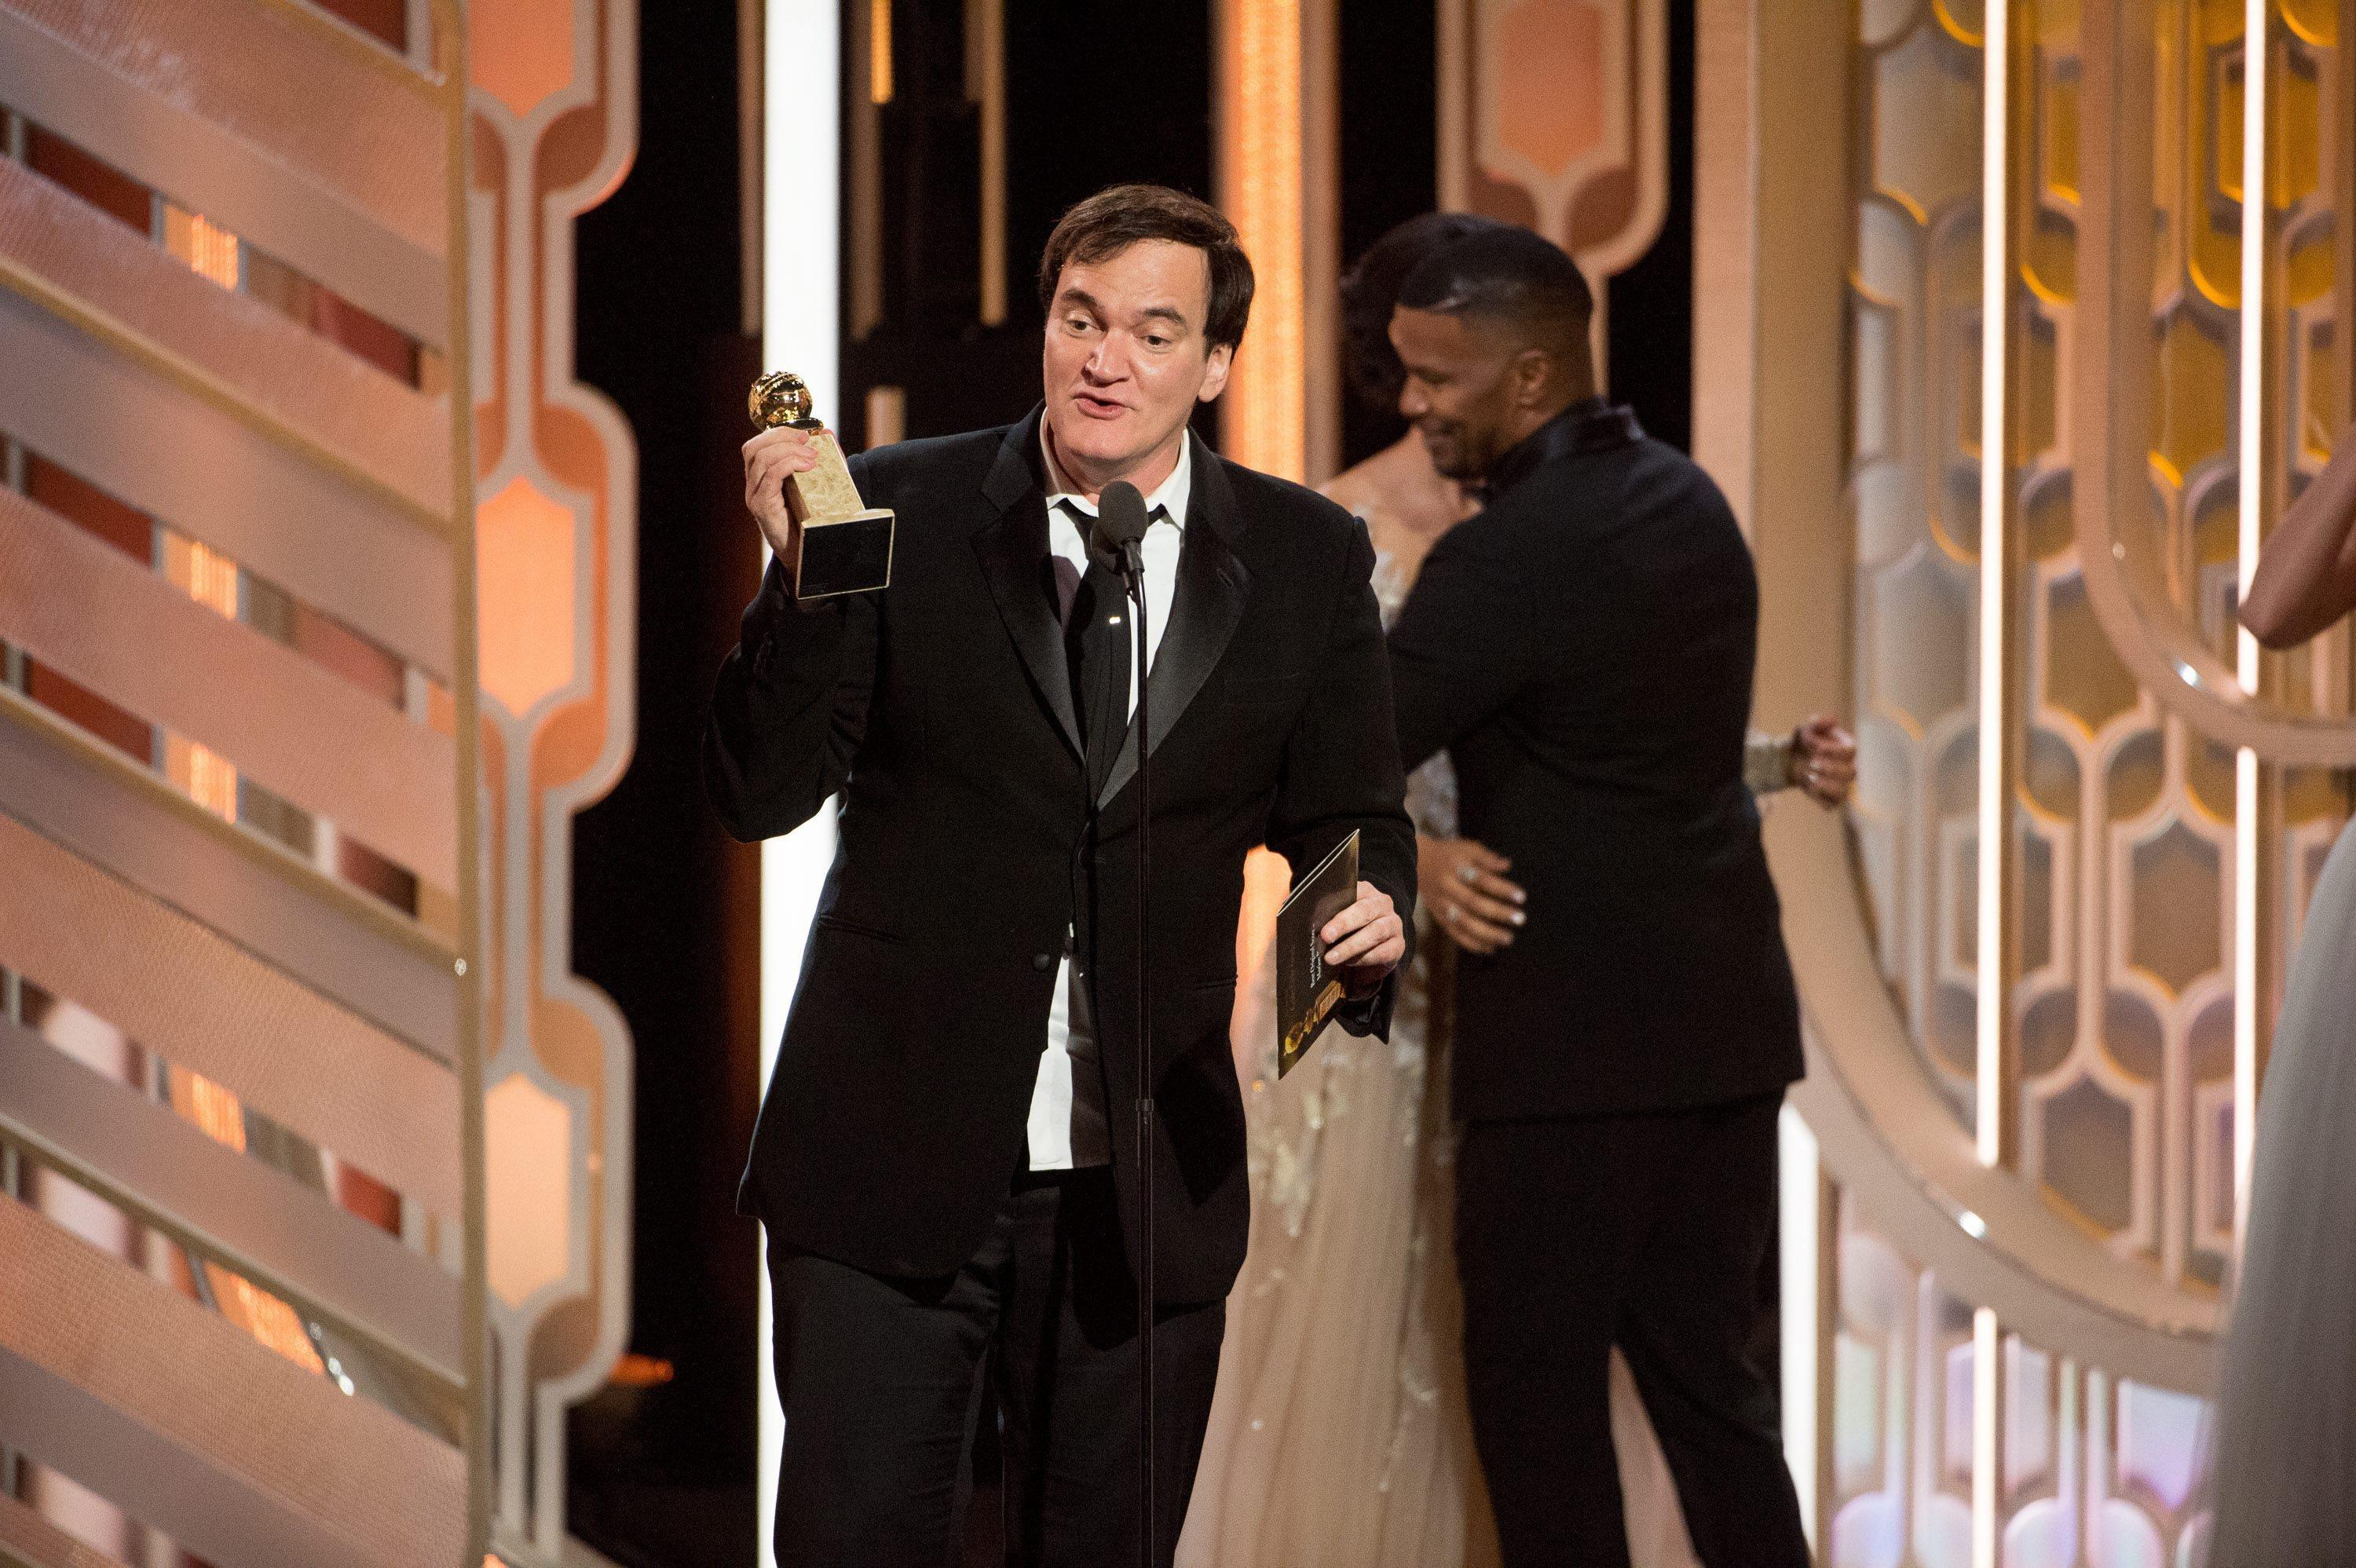 epa05096674 A handout picture provided by the Hollywood Foreign Press Association (HFPA) on 10 January 2016 shows Quentin Tarantino accepting the Golden Globe for Ennio Morricone for Best Original Score in 'The Hateful Eight' at the 73rd Annual Golden Globe Awards at the Beverly Hilton in Beverly Hills in Beverly Hills, California, USA, 10 January 2016. EPA/HFPA HANDOUT EDITORIAL USE ONLY/NO SALES